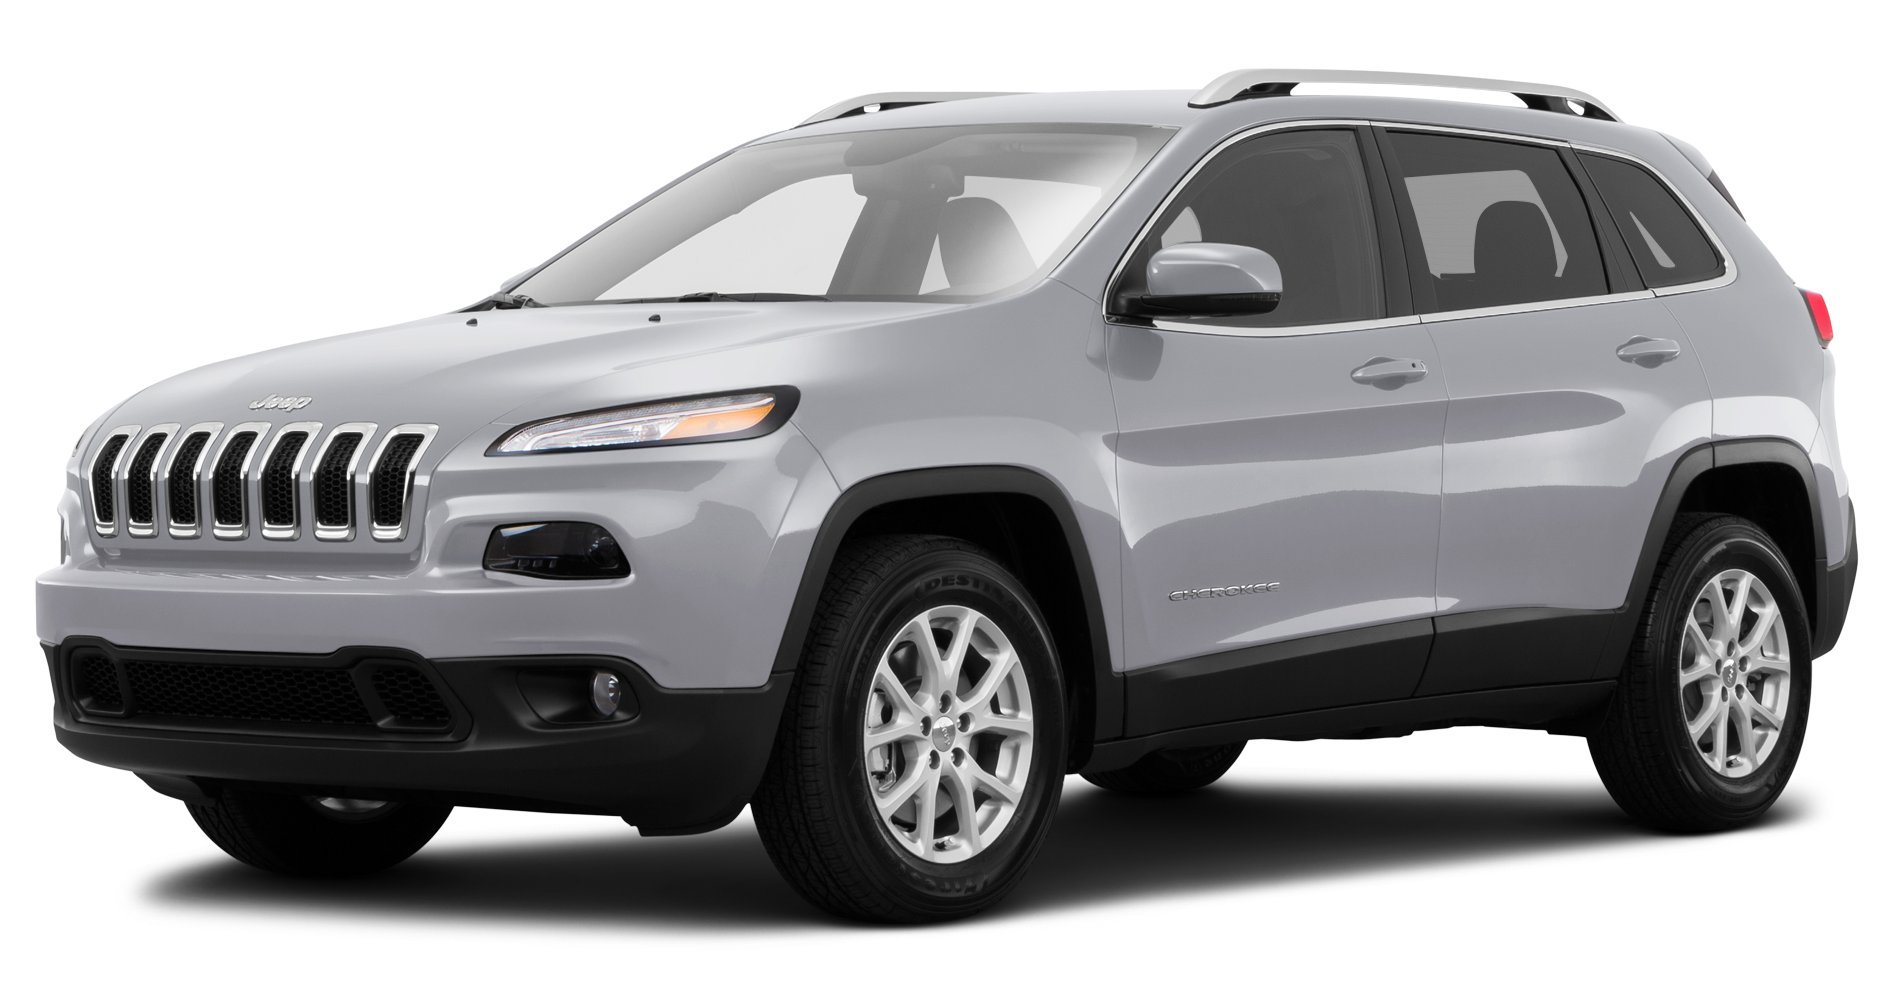 2016 jeep grand cherokee reviews images and specs vehicles. Black Bedroom Furniture Sets. Home Design Ideas